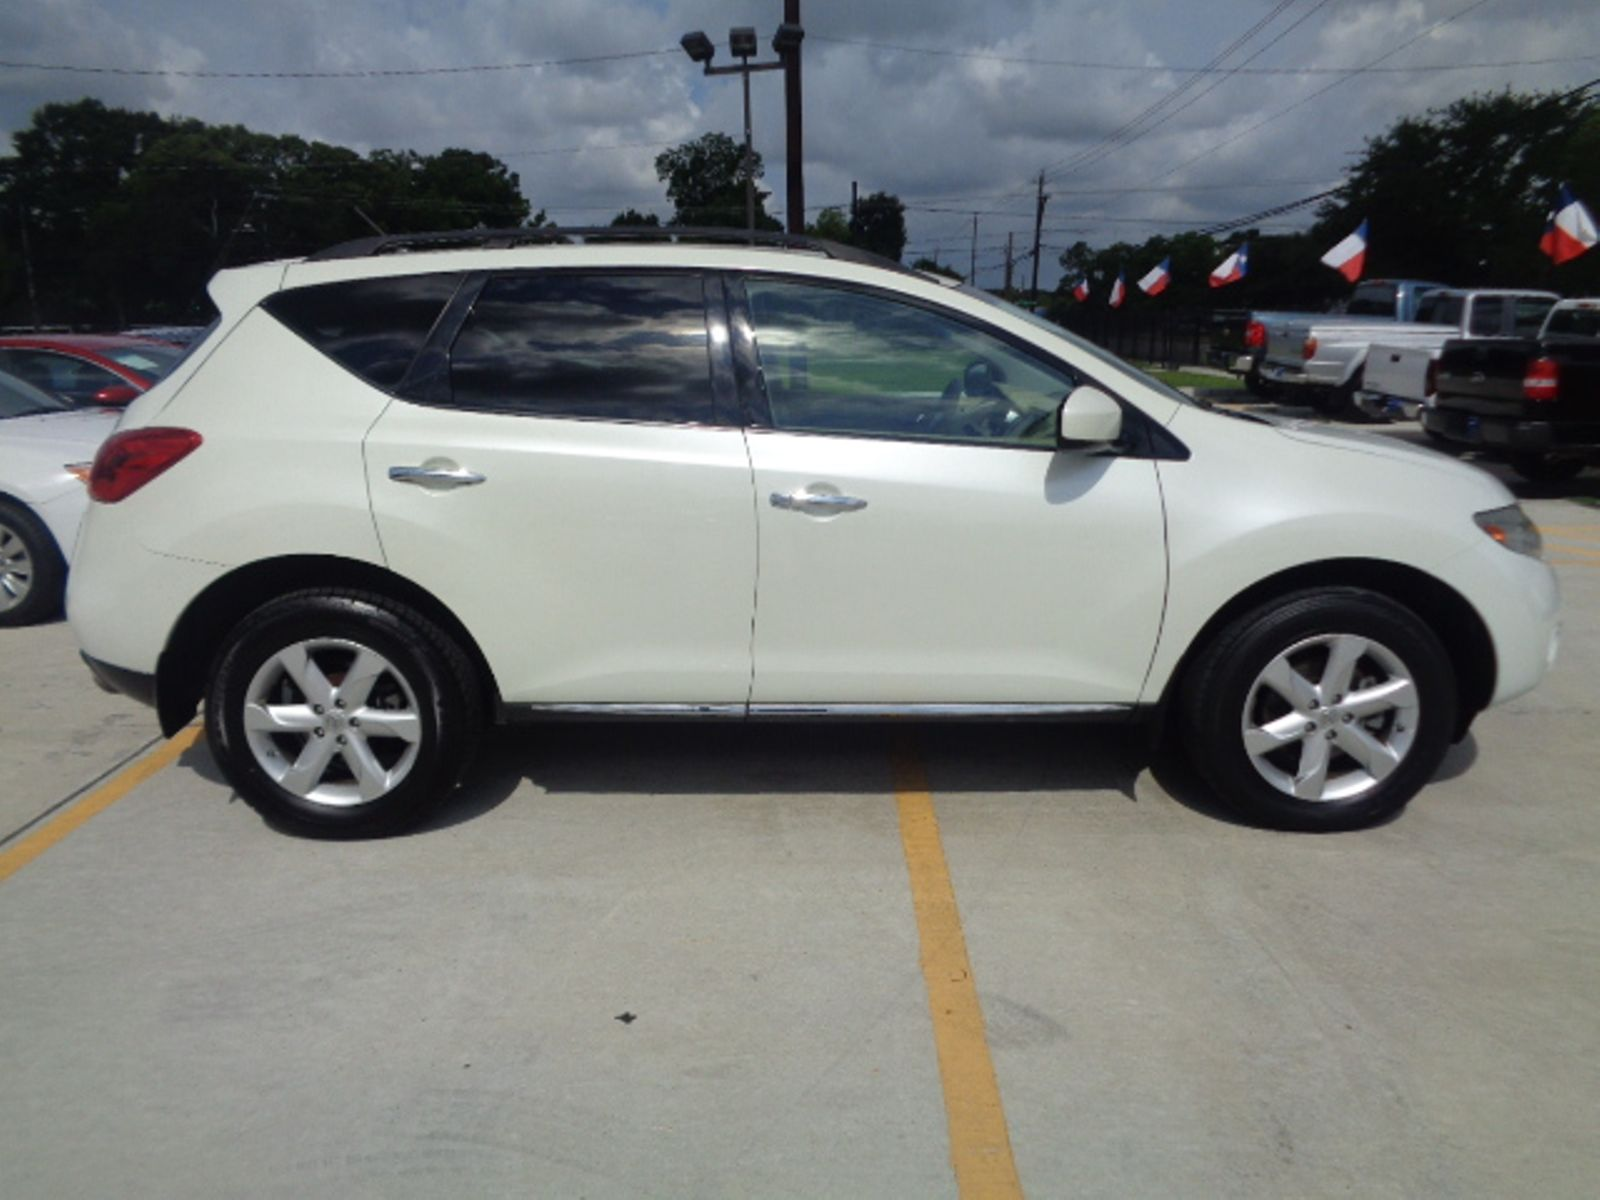 city s fleets leaf and annually loveland cut lovelands of by save houston nissan fuel costs